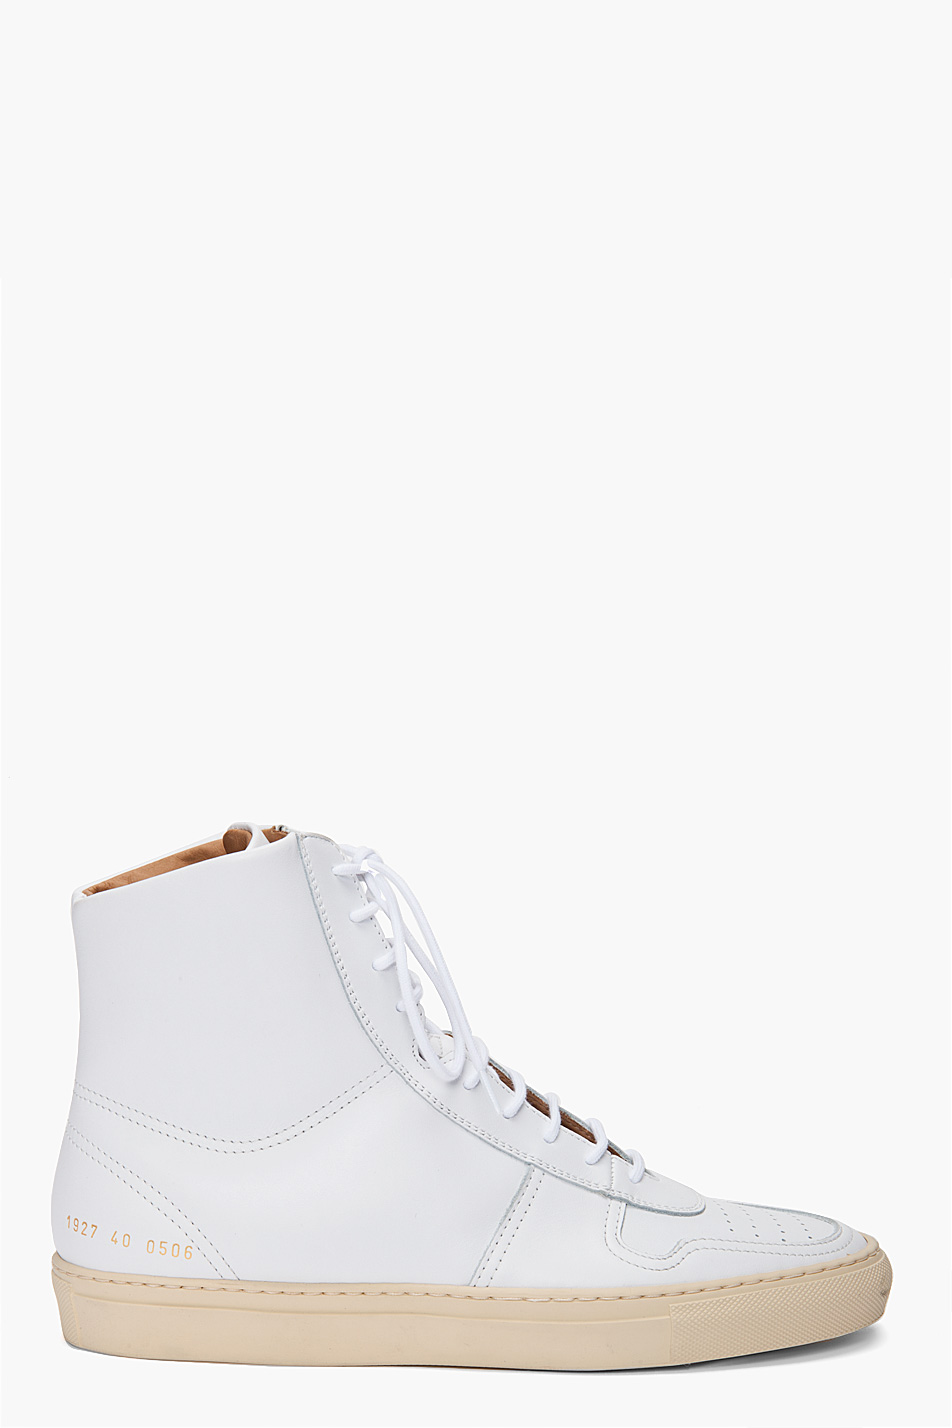 Common Projects Vintage Bball Sneakers in White for Men | Lyst